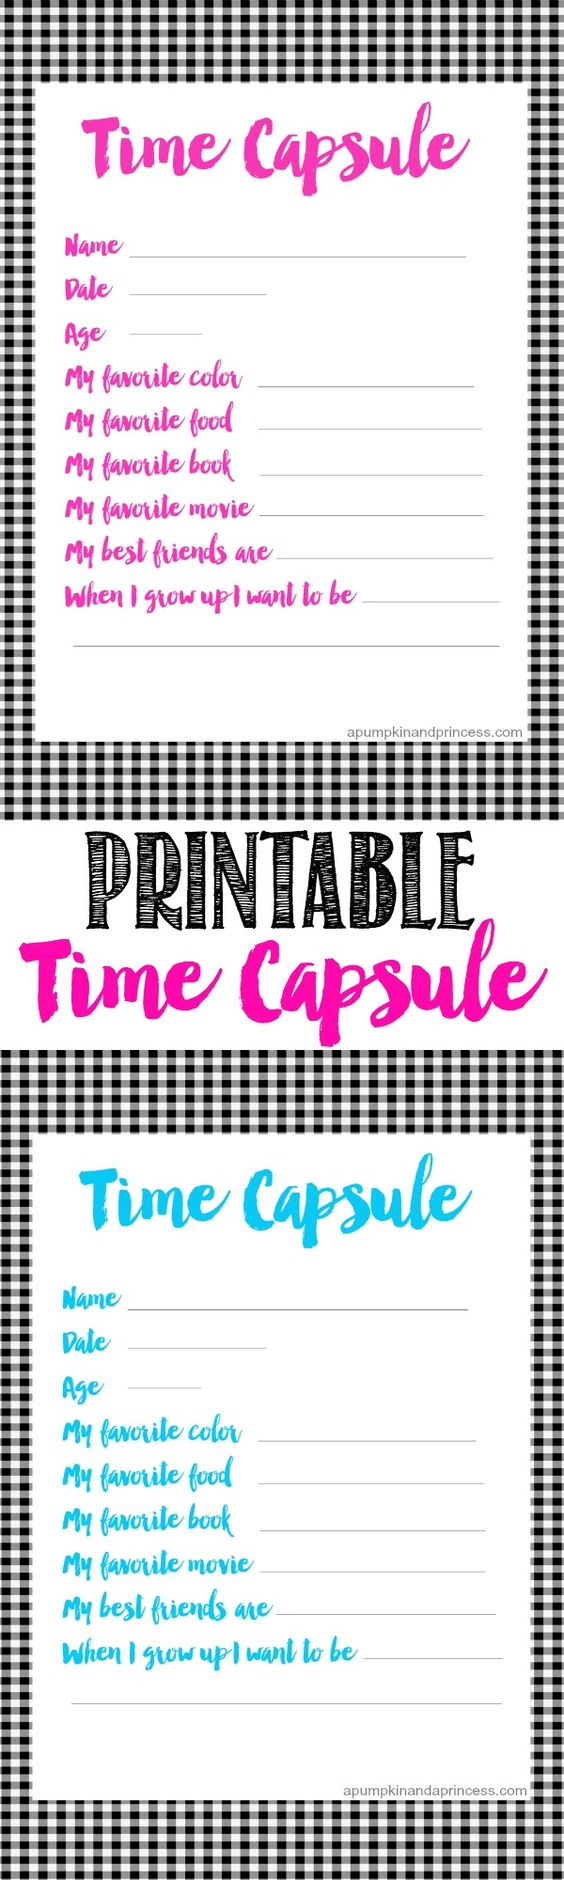 time capsule printable for kids seniors 2018 time capsule kids baby time capsule time capsule. Black Bedroom Furniture Sets. Home Design Ideas